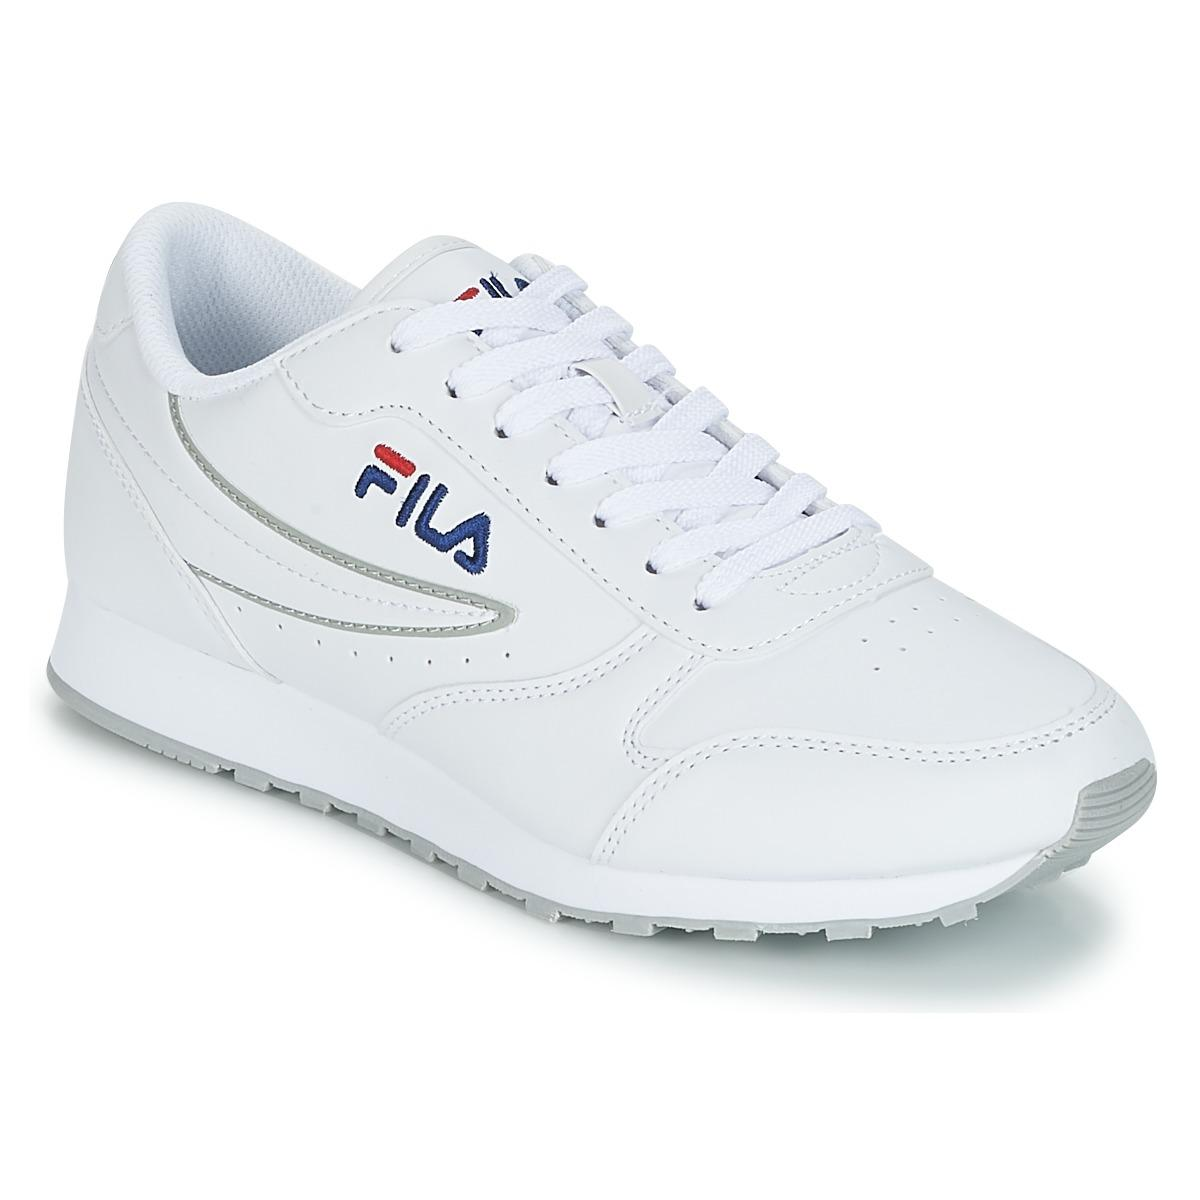 81c78afe47f5 Fila Orbit Low Wmn Shoes (trainers) in White - Save 24% - Lyst